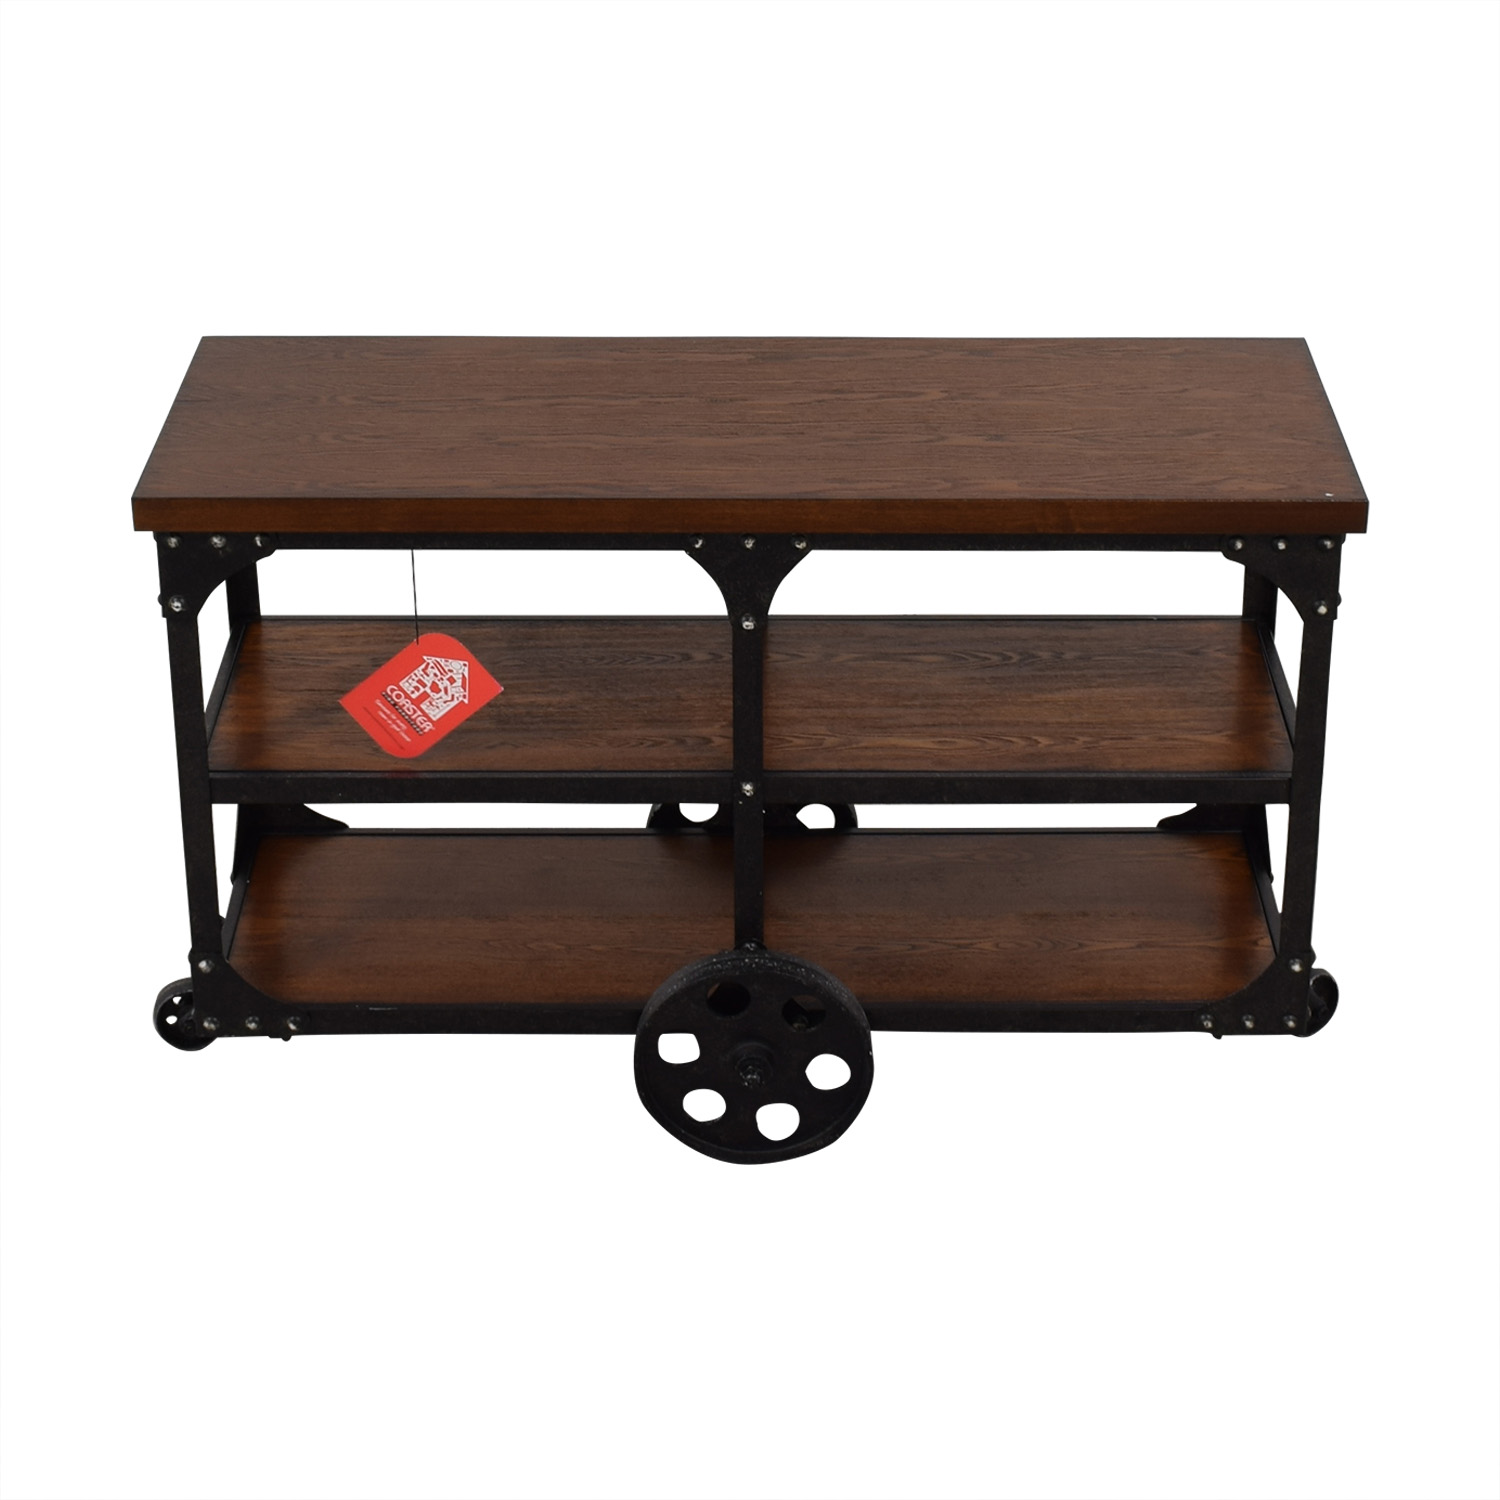 Coaster Fine Furniture Coaster Fine Furniture Rustic Industrial Roller Cart Sofa Table coupon